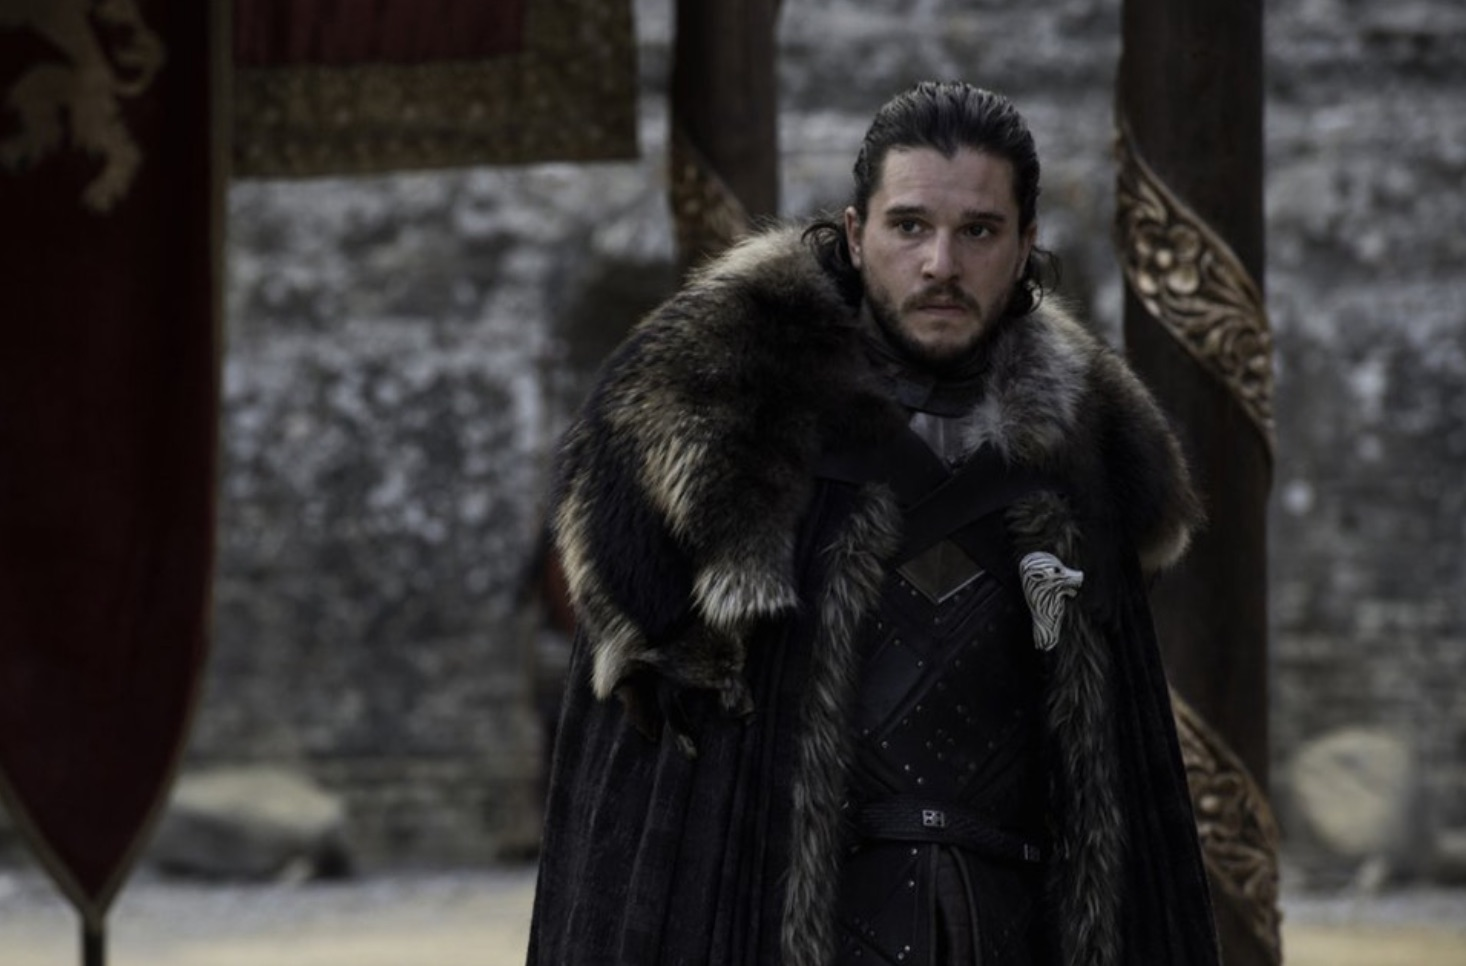 Watch GoT S7E7 Online on HBO, Hotstar and Now TV for free